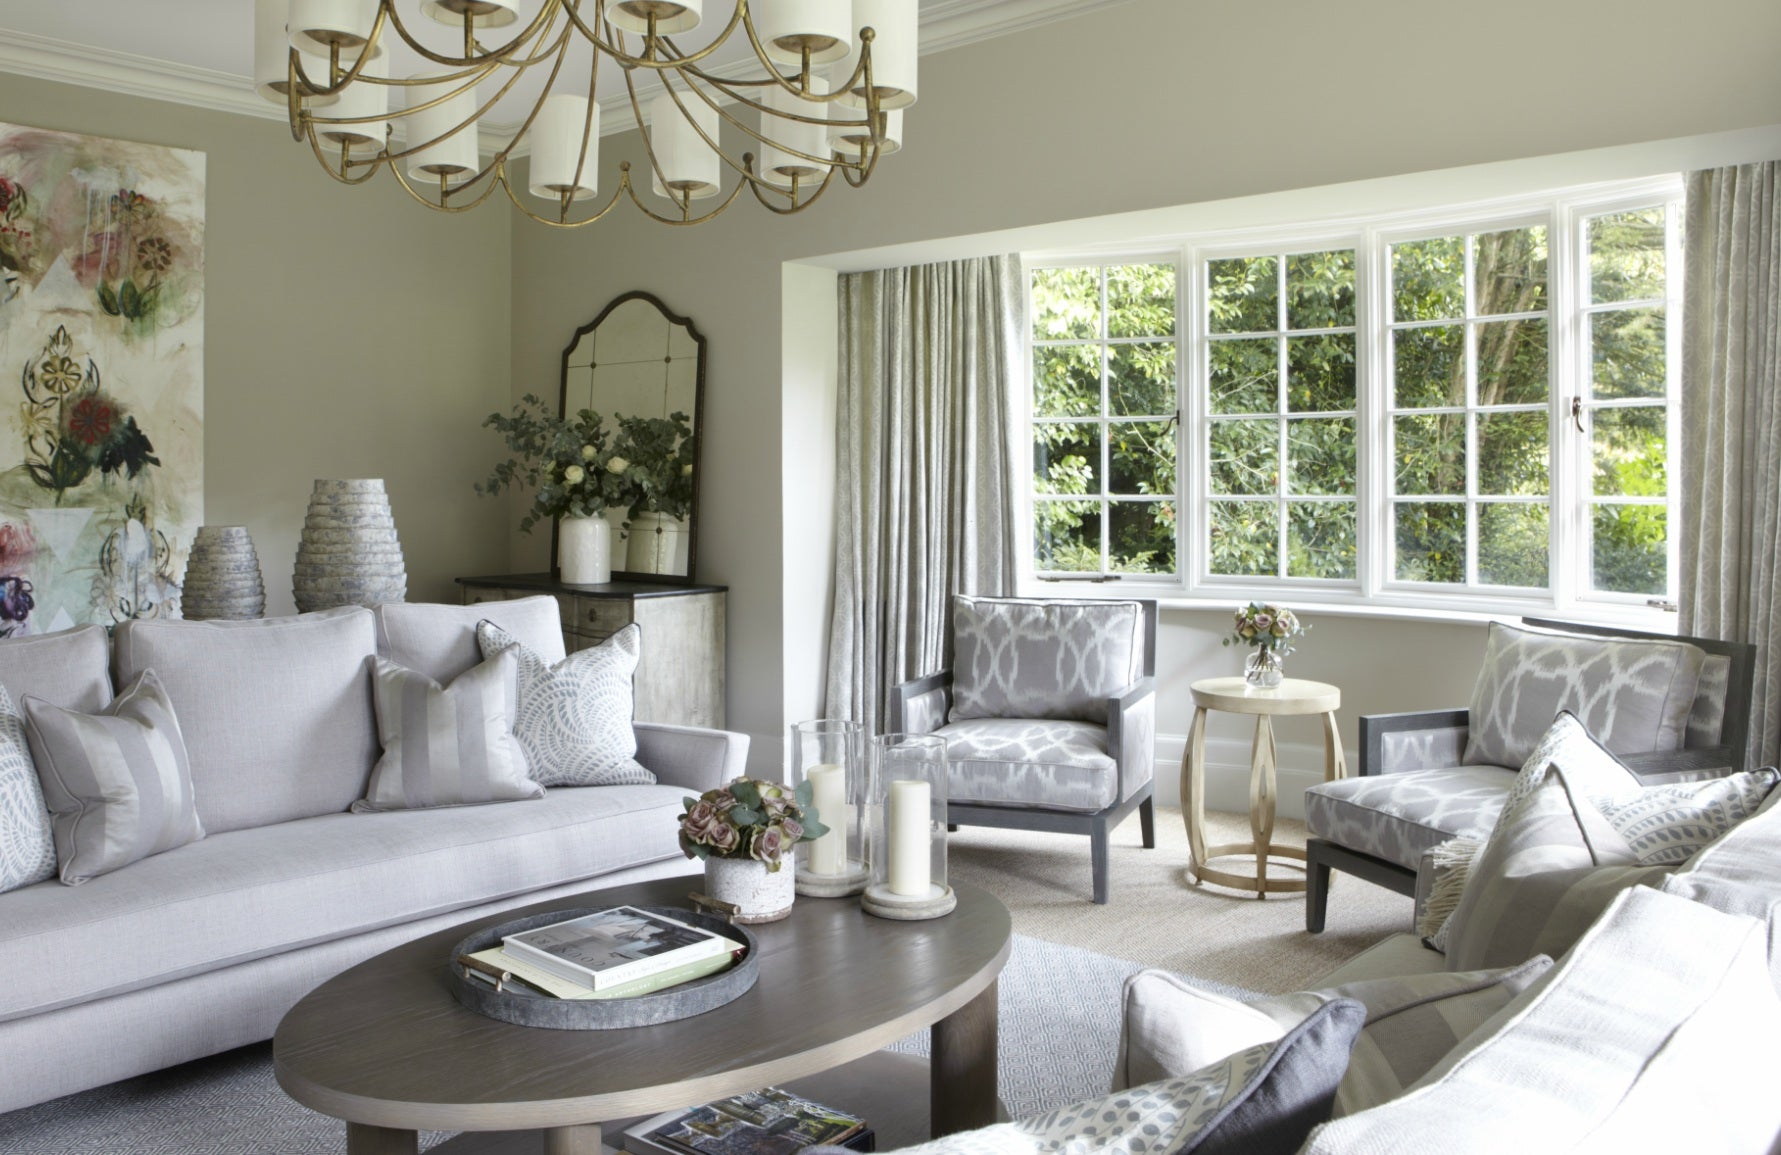 Modern Country Interiors | Helen Green Design Living Room | The Luxurist